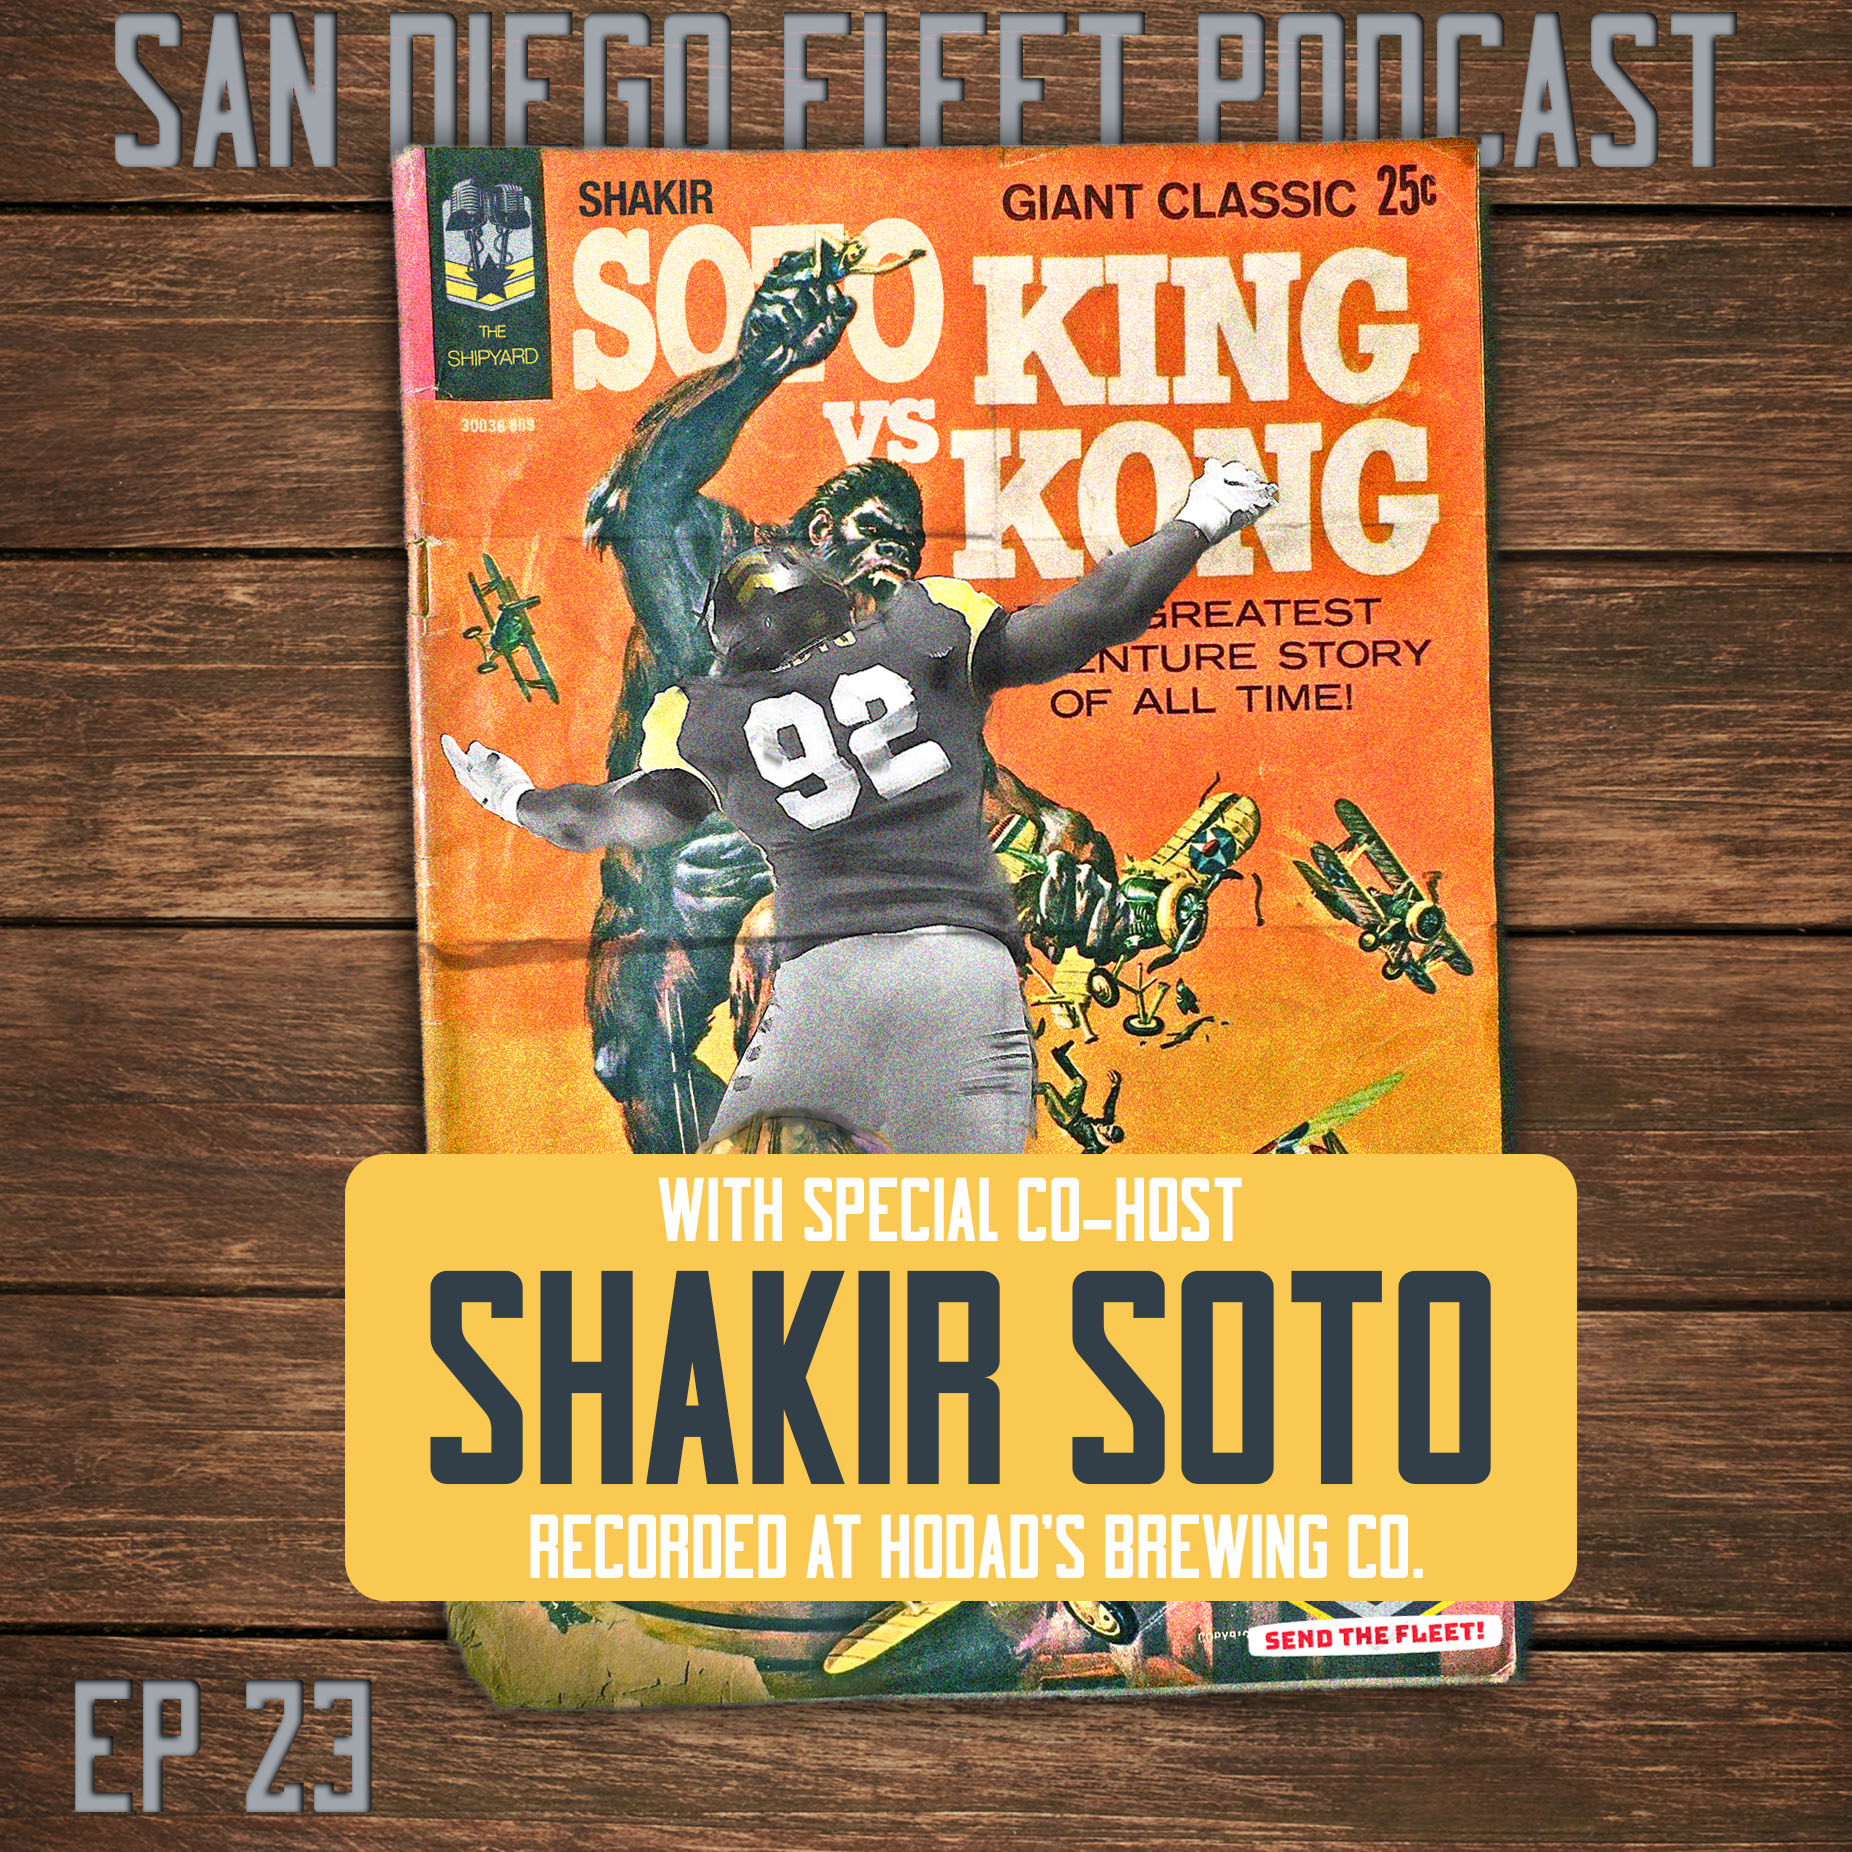 023 | Shakir Soto Co-Hosts from Hodad's Brewing.  What's it like, to be a Fleetm'n